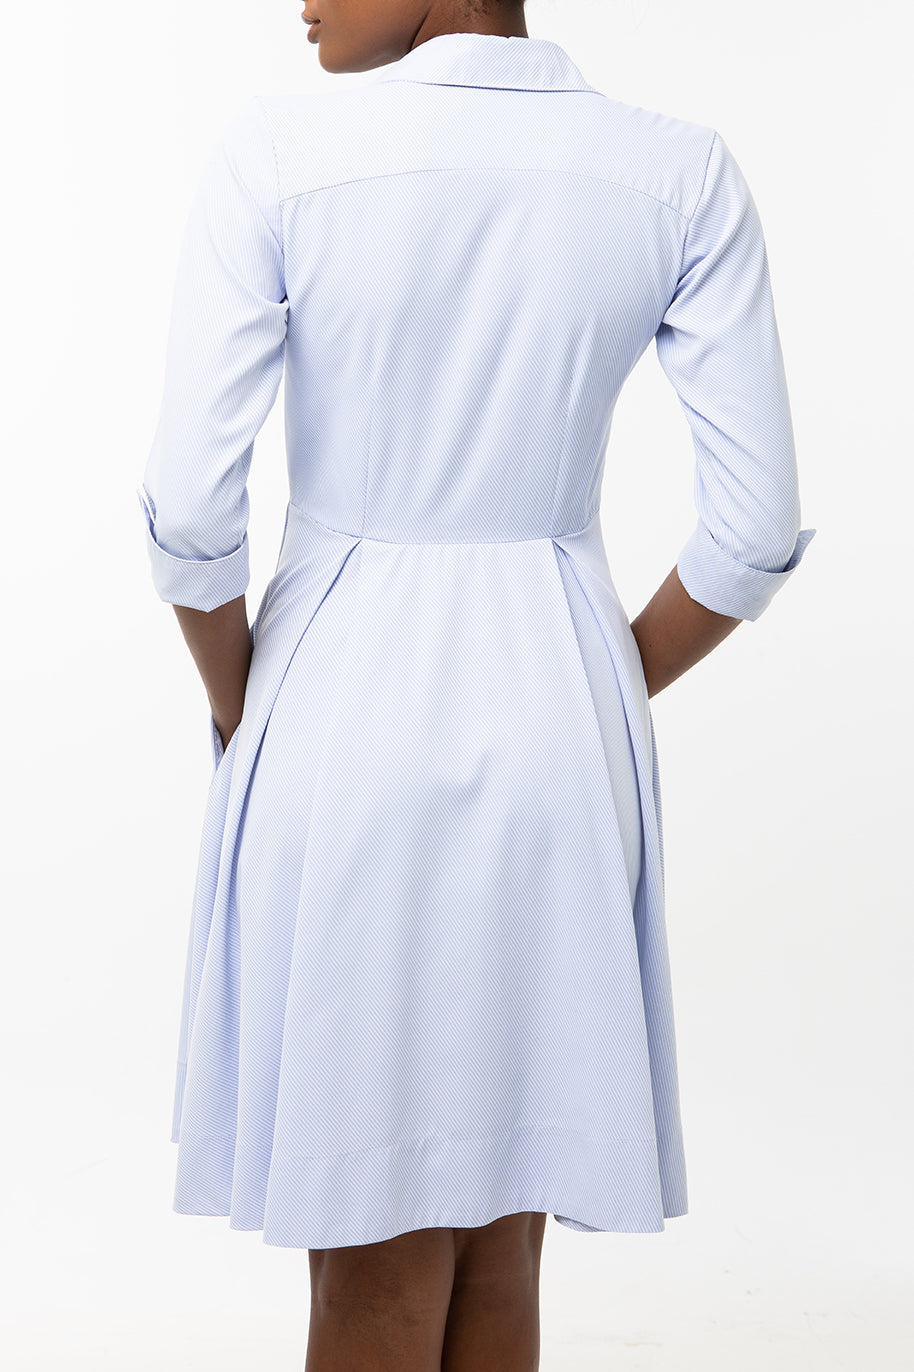 Classic Pleated Keneea Linton Shirtdress — Sky blue (pin stripes)